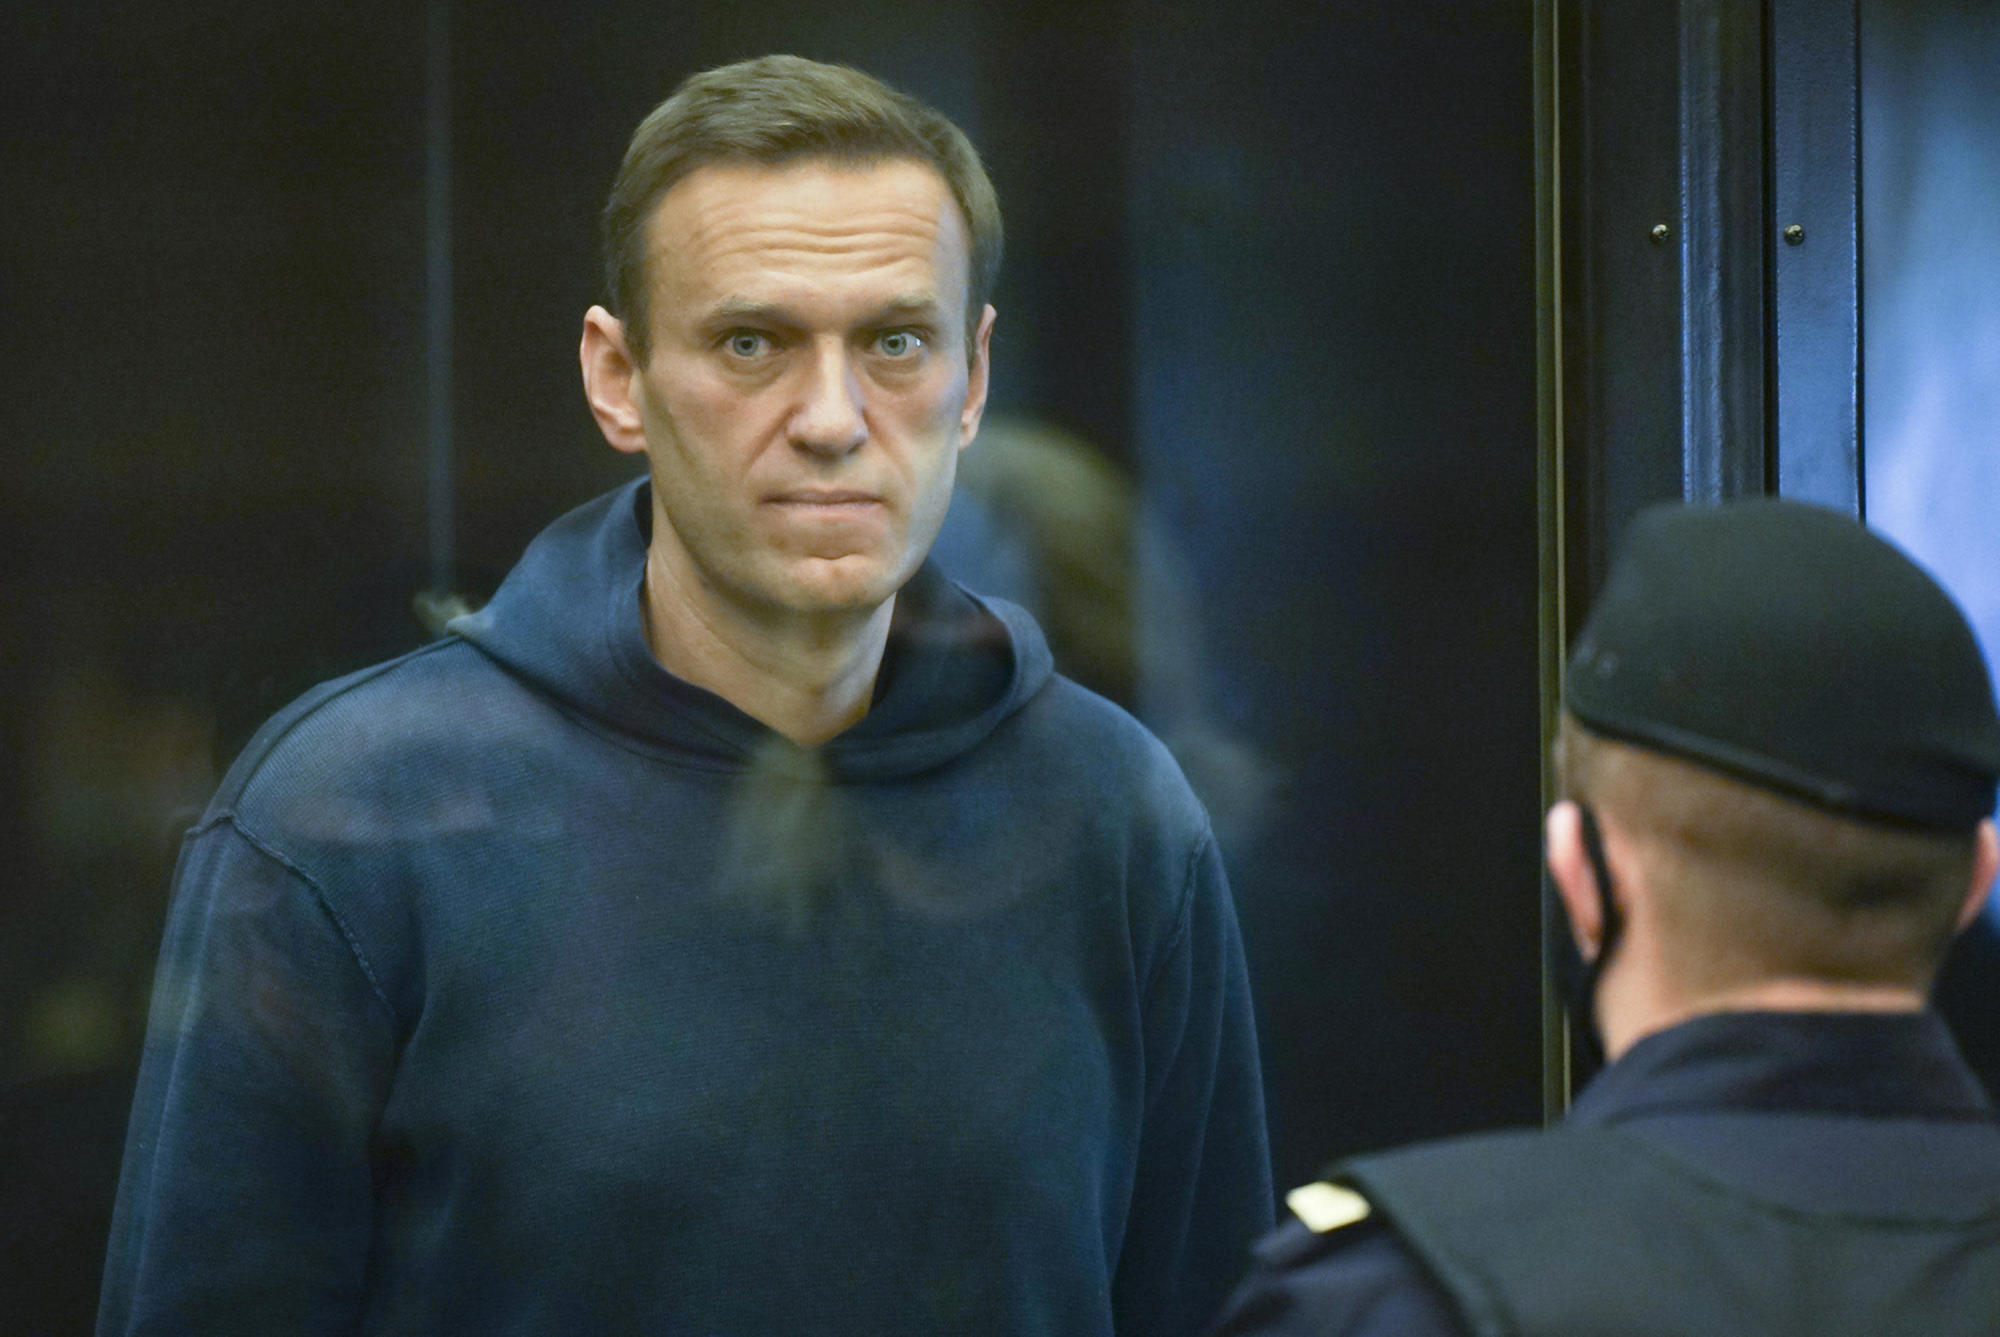 Navalny says Russian prison officials threatening to force feed him